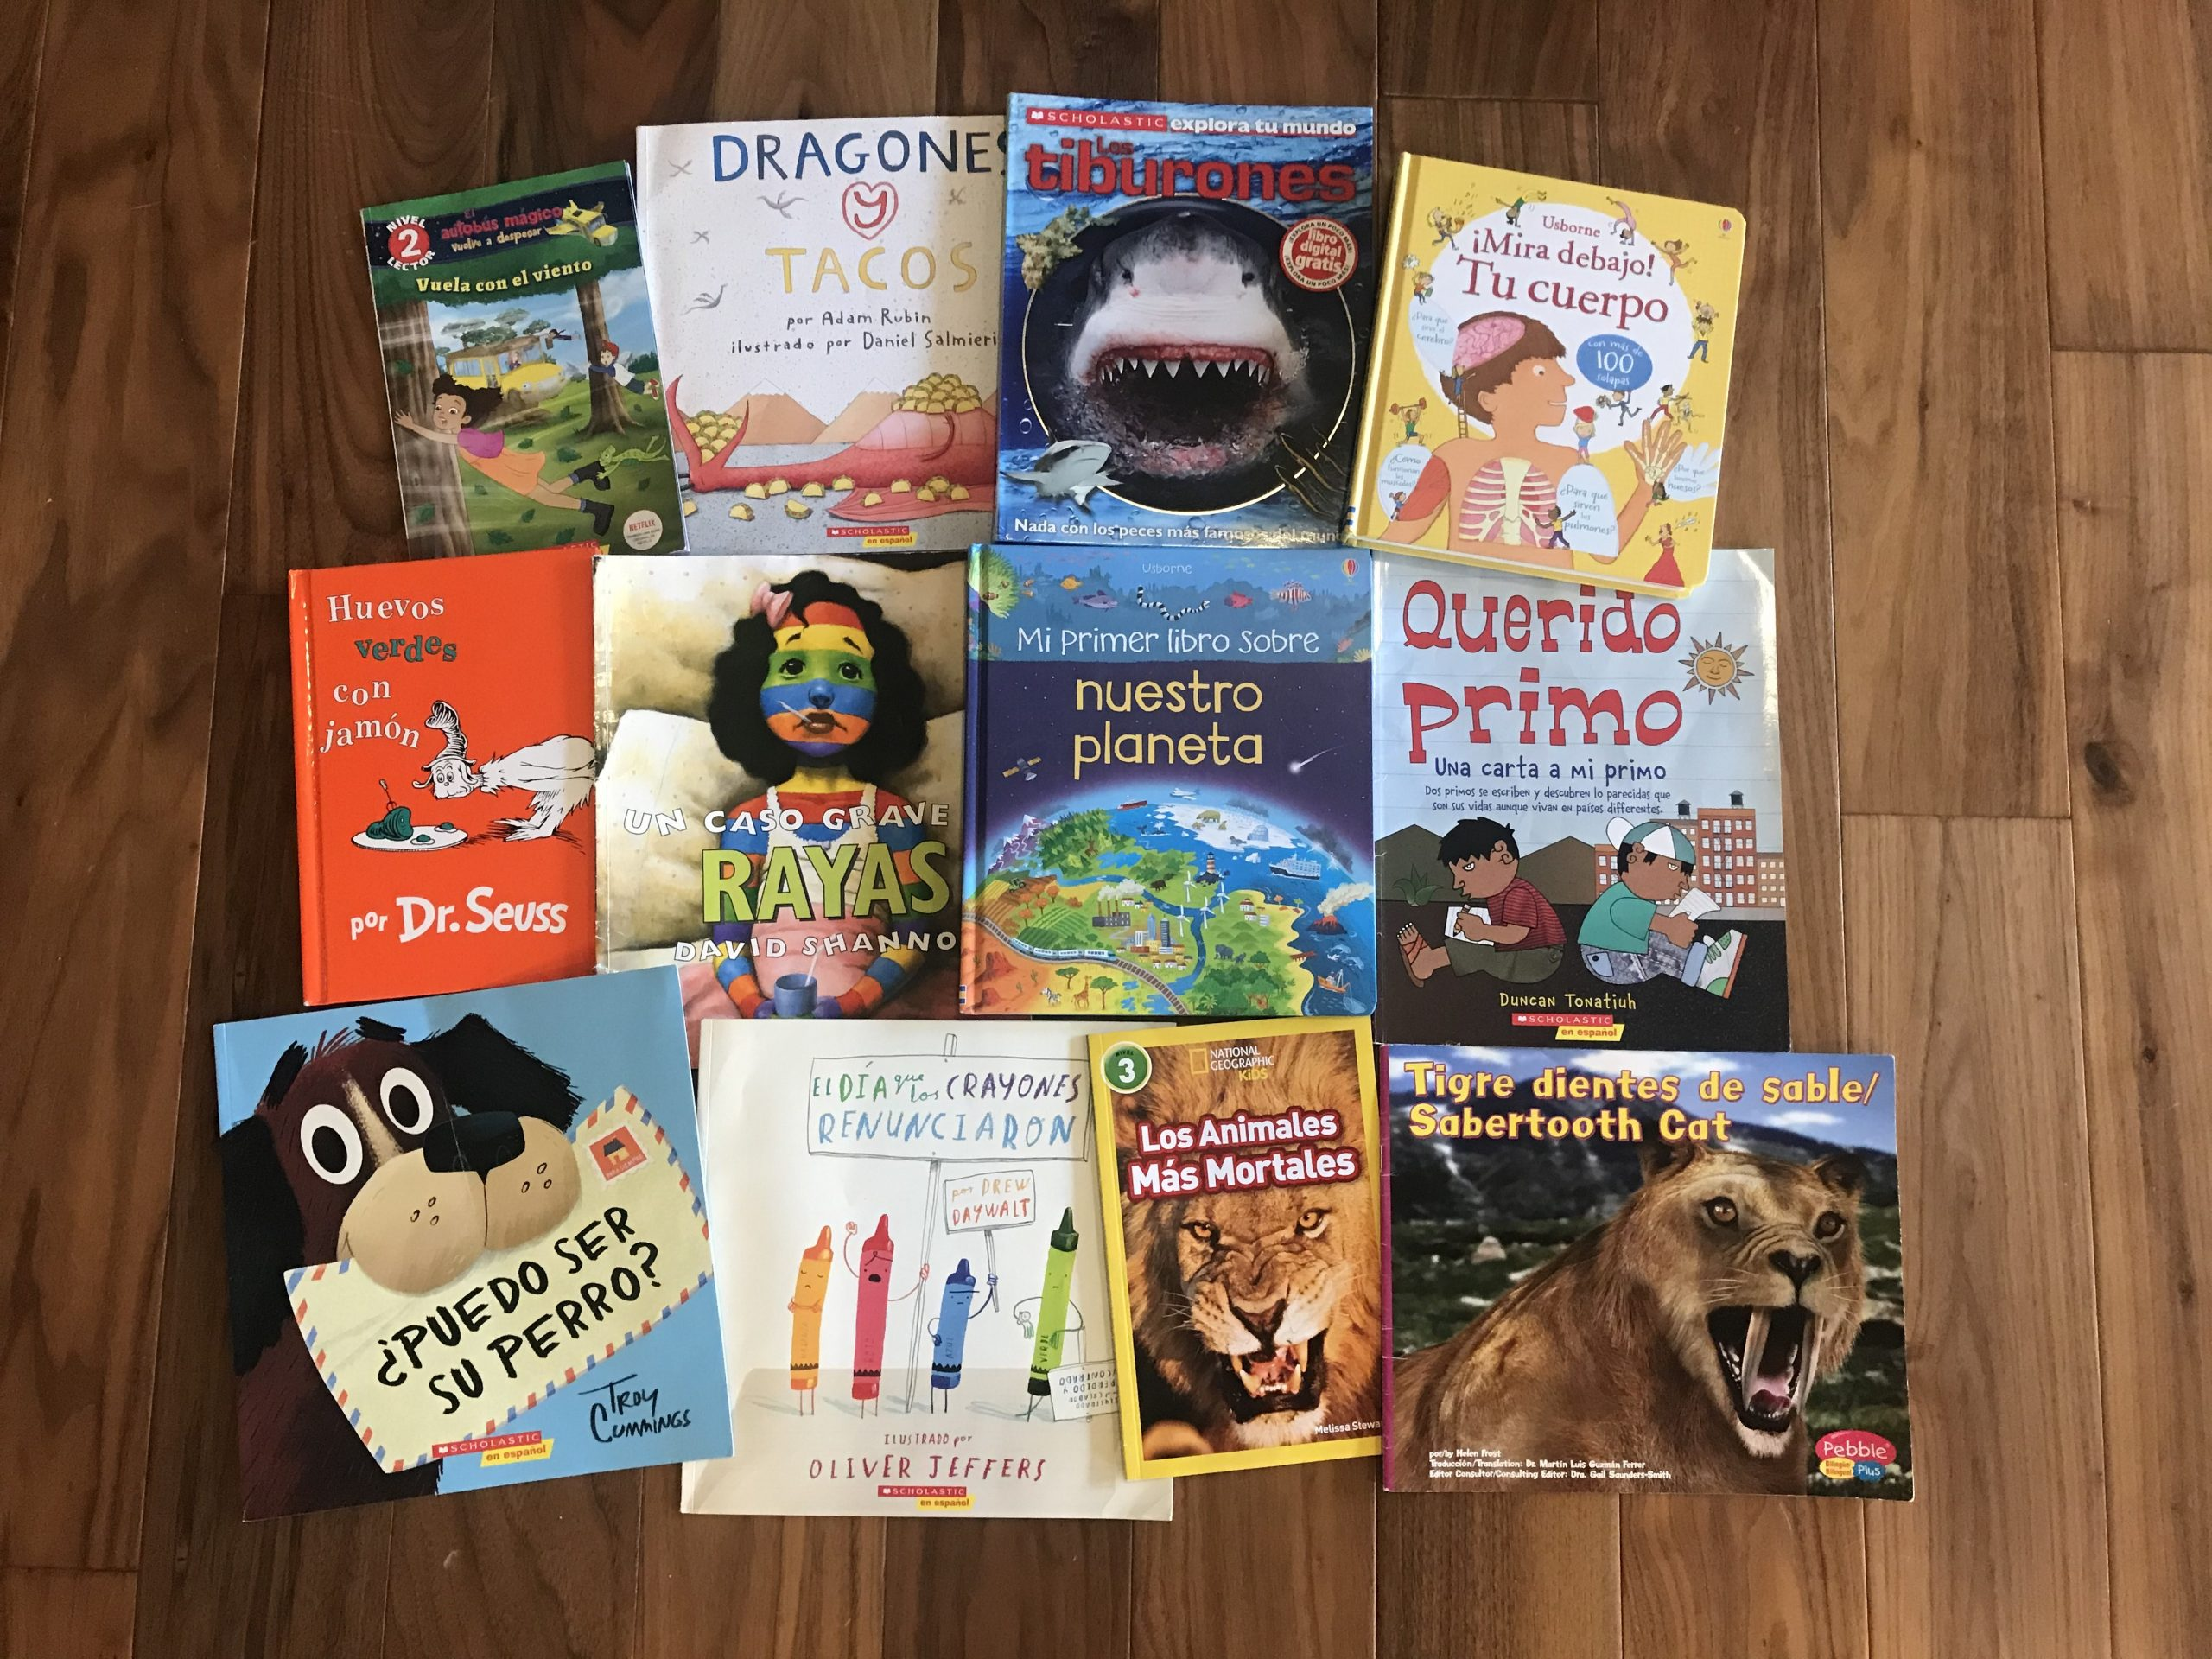 My 7-Year-Old's Favorite Spanish/Bilingual Books